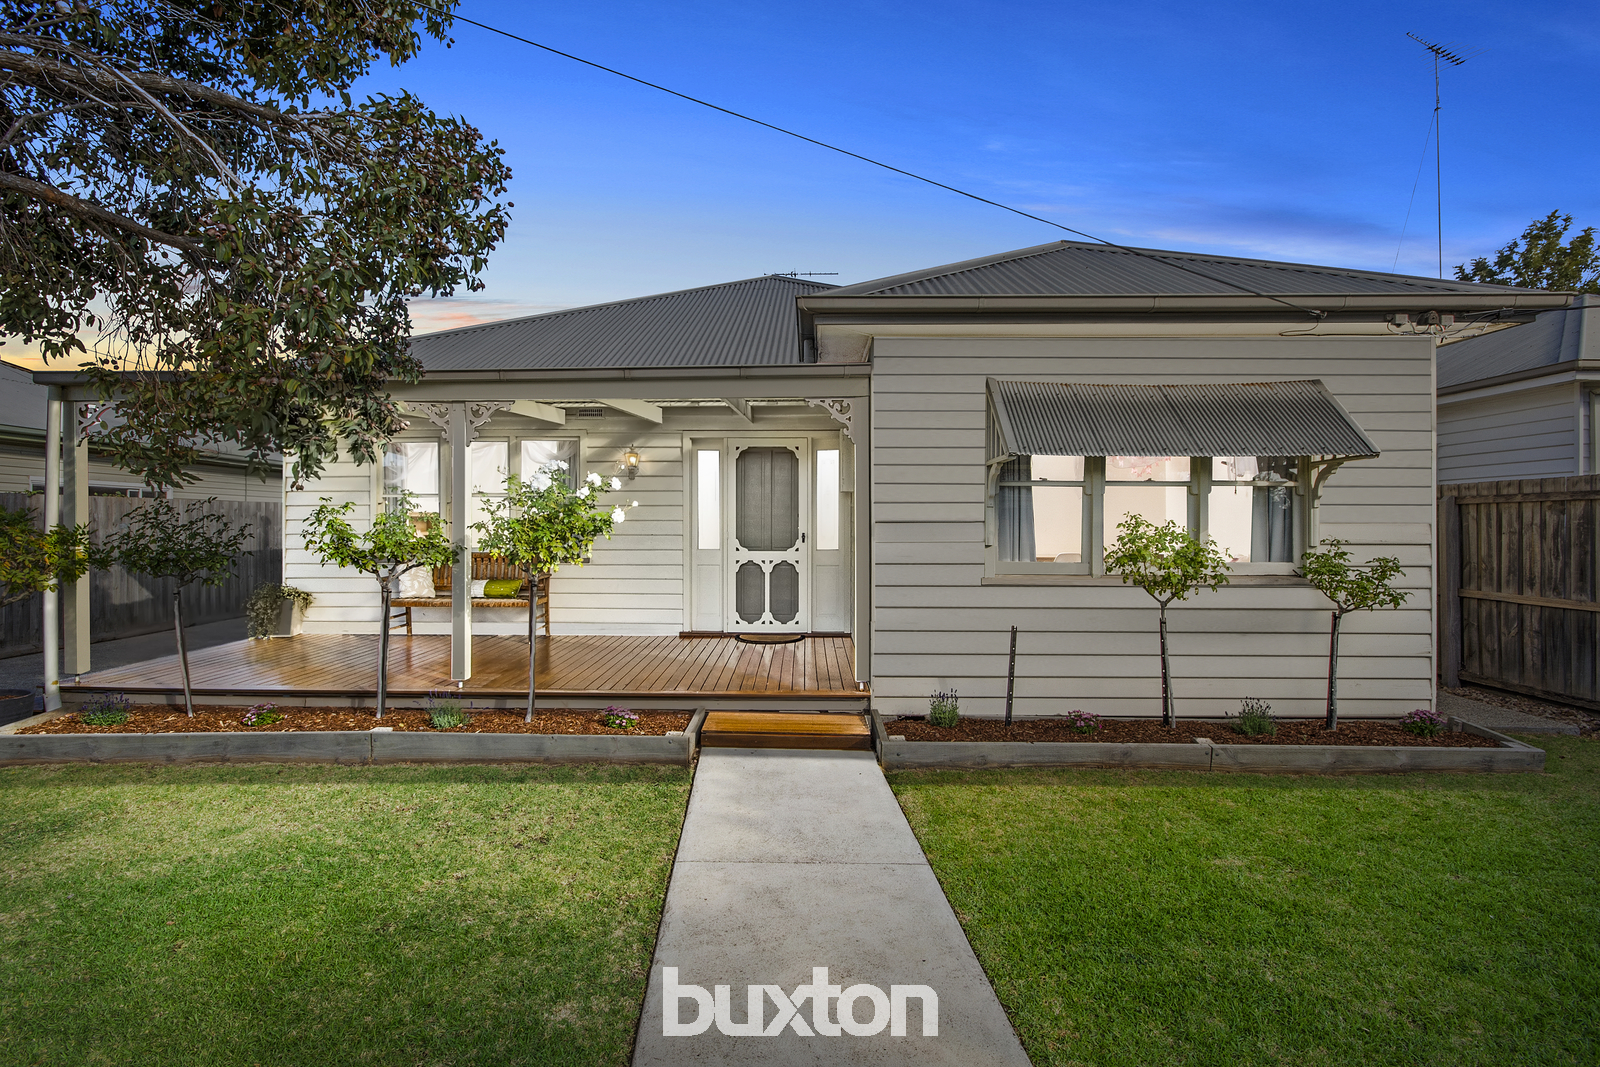 Property Report for 30 Wilton Avenue, Newcomb VIC 3219